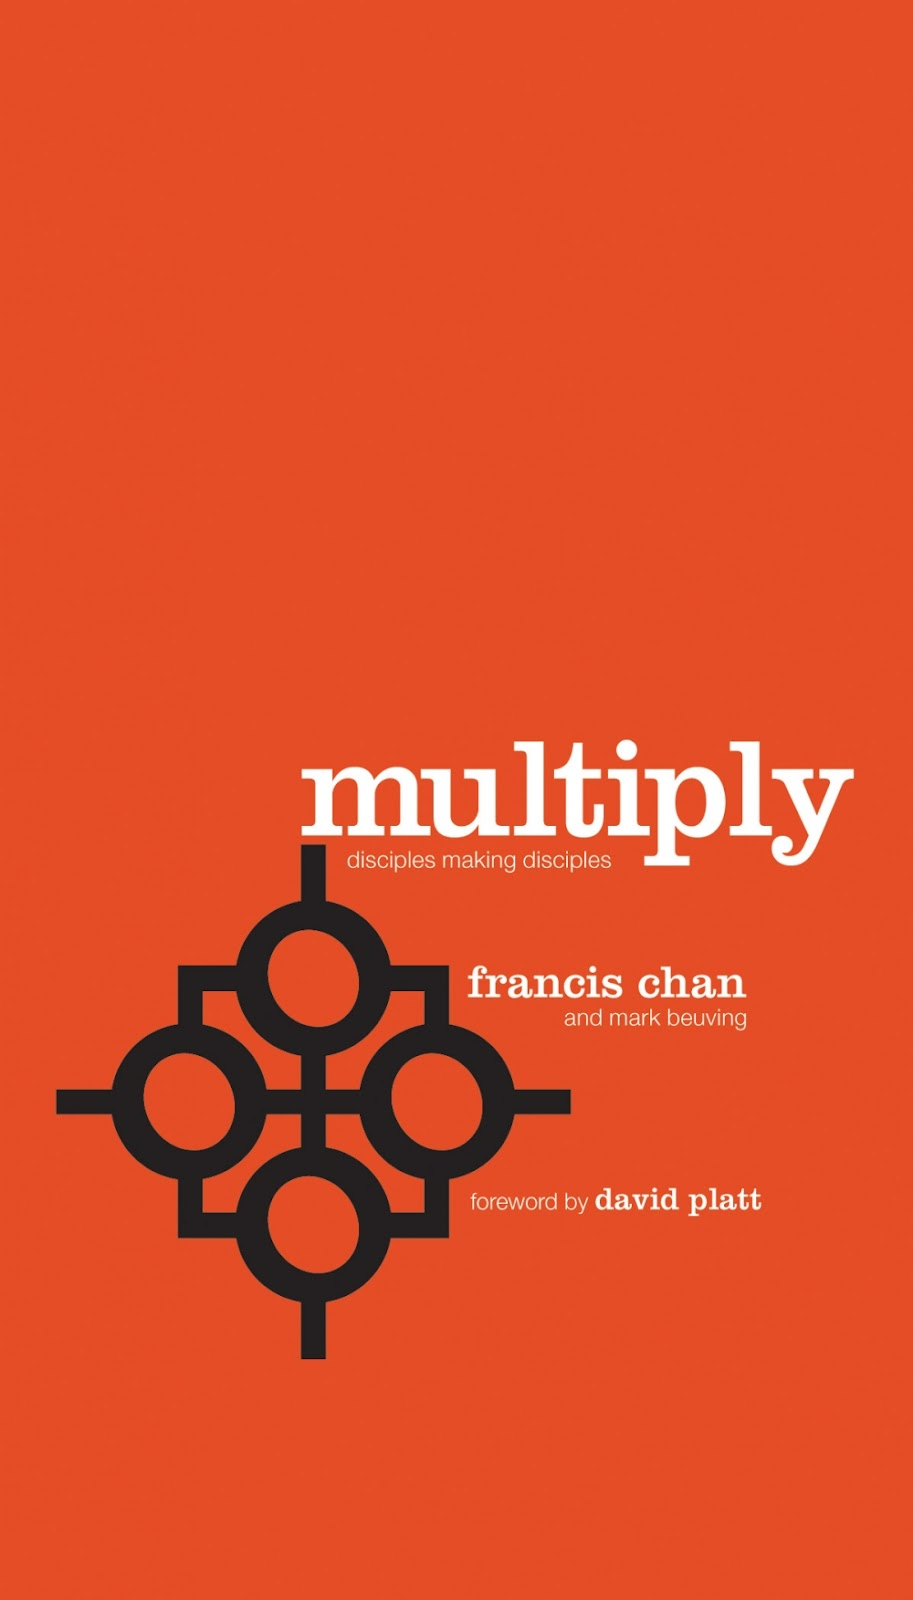 Multiply: Disciples making Disciples, by Francis Chan